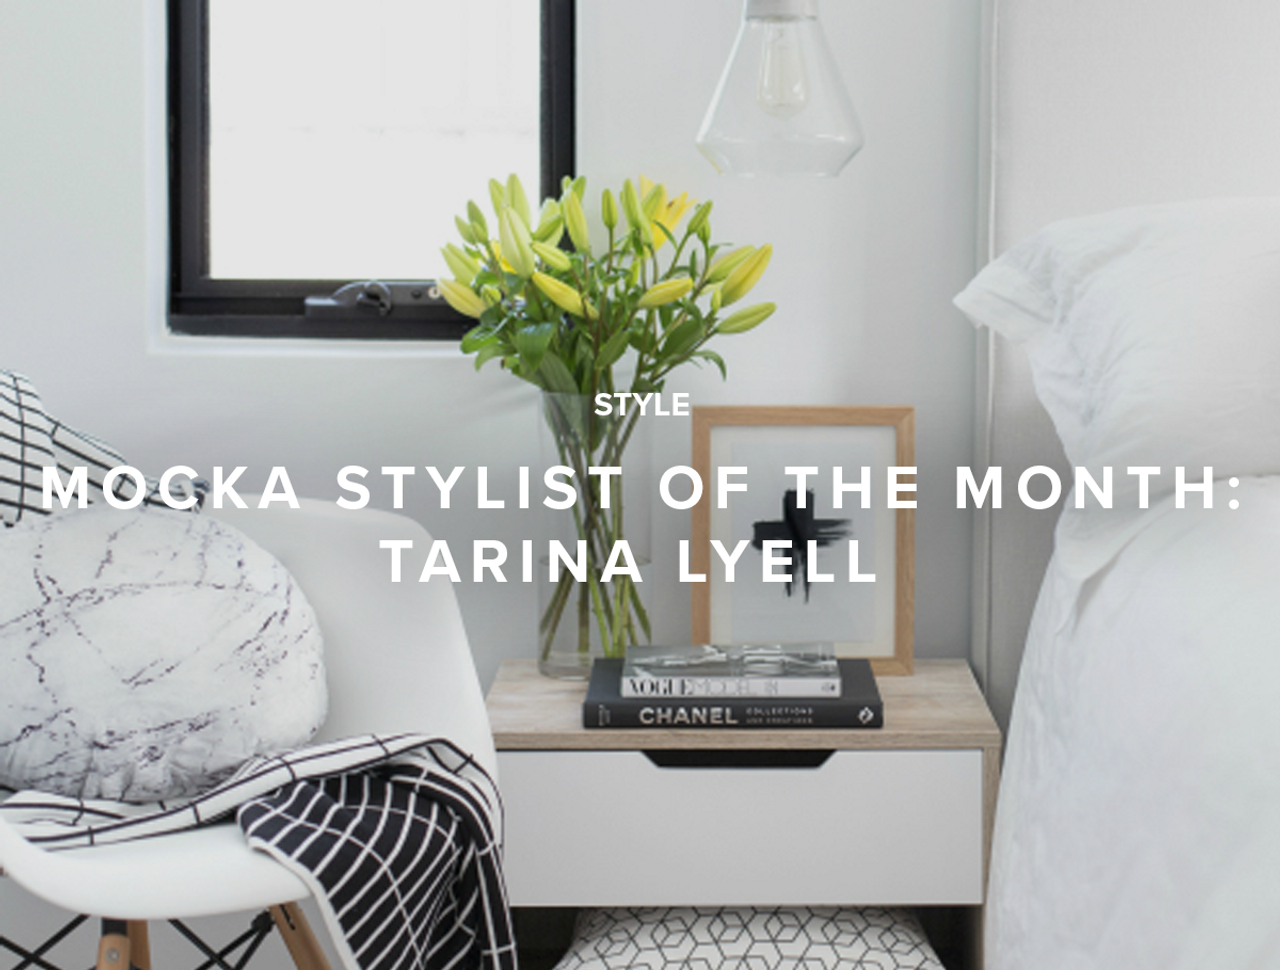 Mocka Stylist of the Month: Tarina Lyell